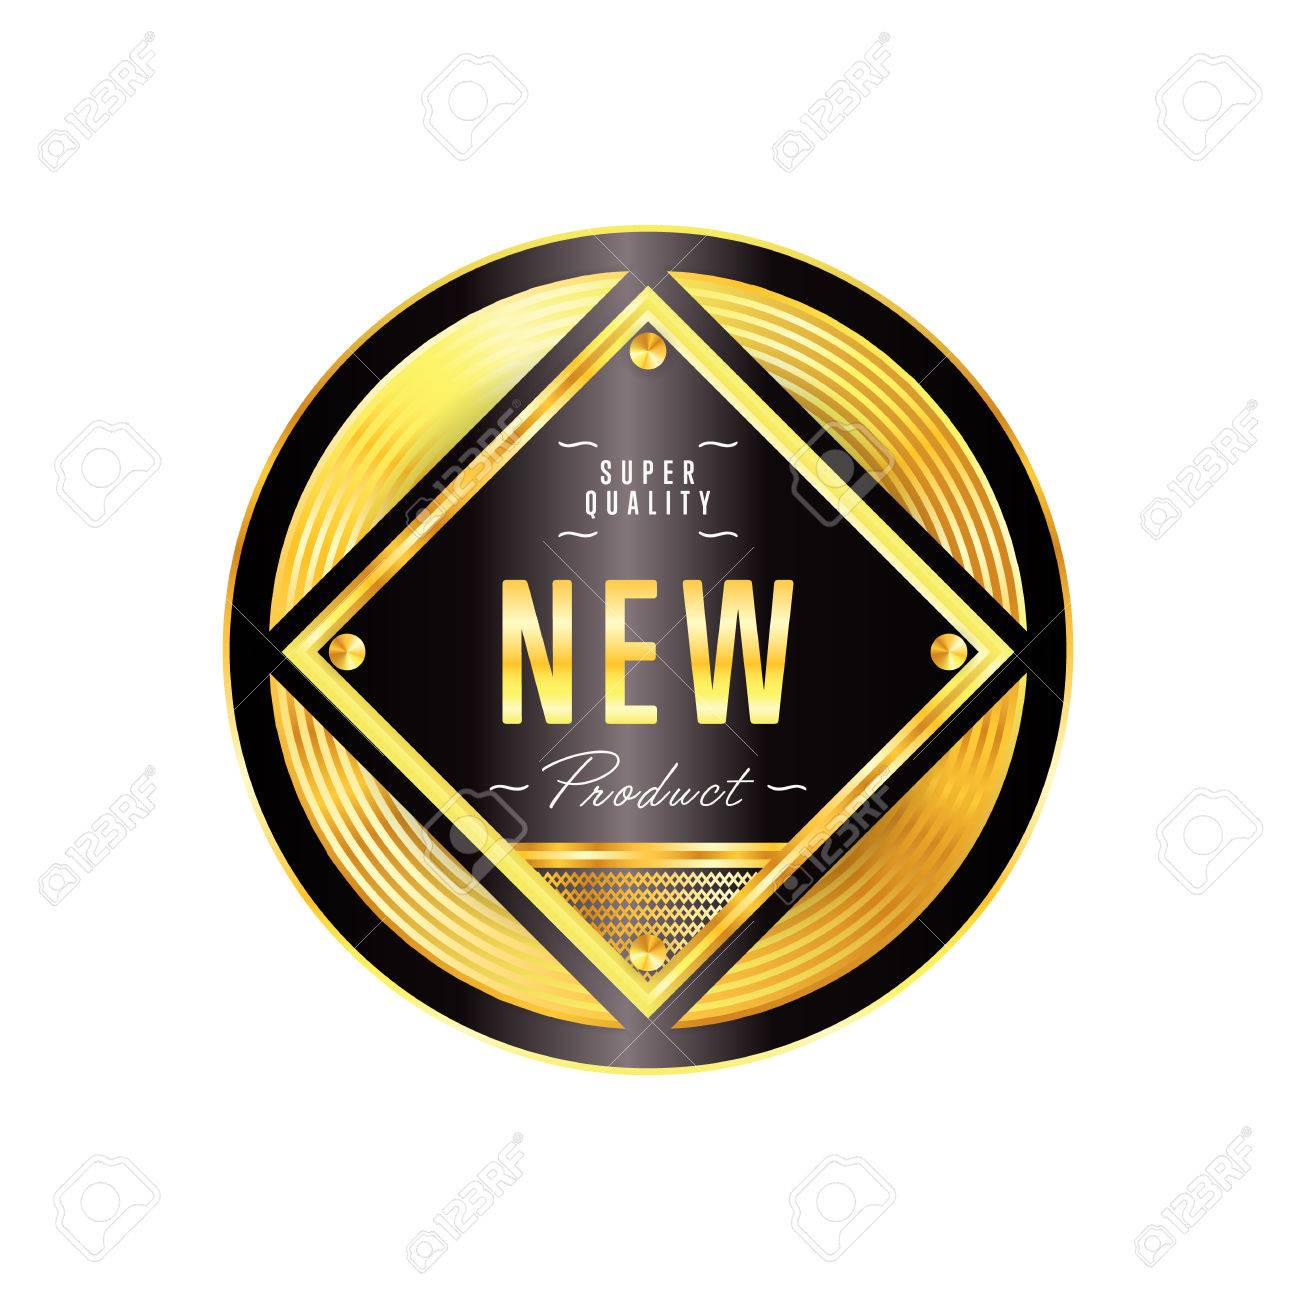 Gold Badge With Black Text Vector Isolated Royalty Free Cliparts